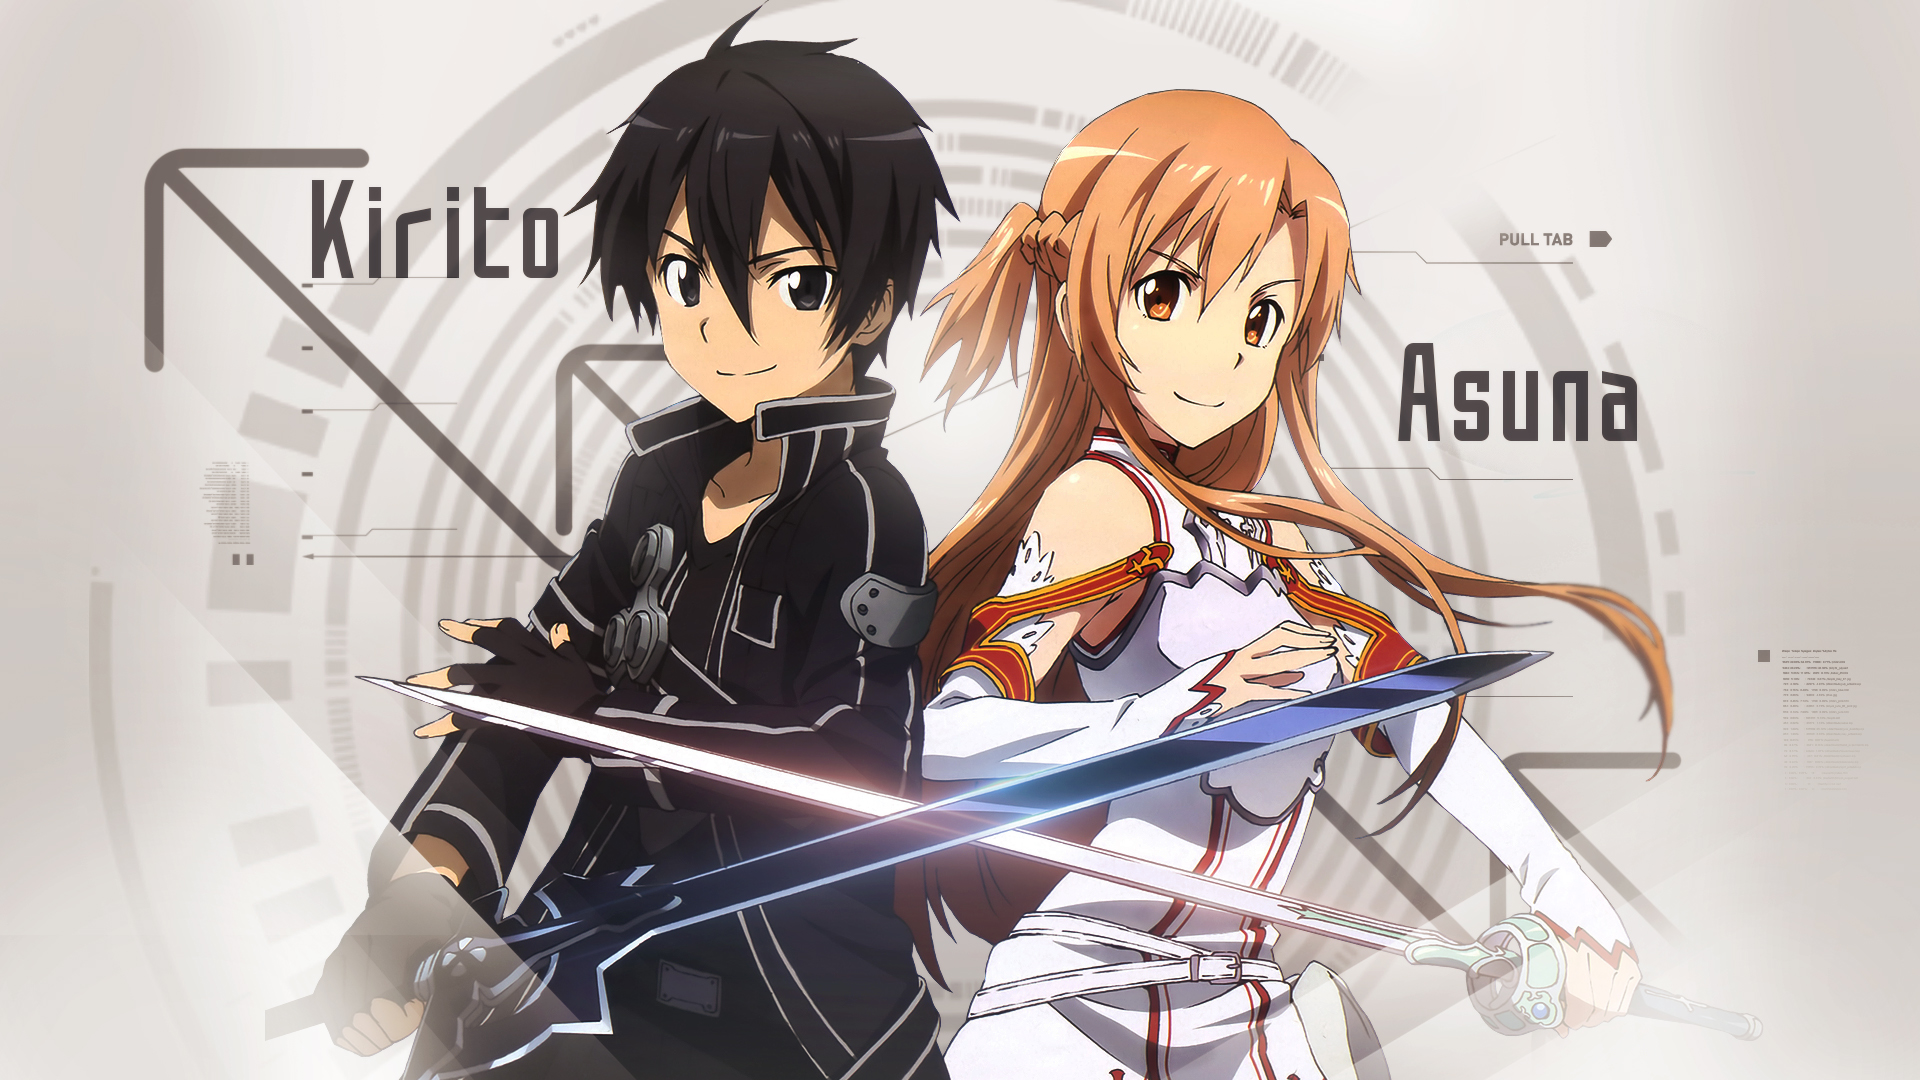 Sword Art Online - Kirito and Asuna Wallpaper by Trinexz ...